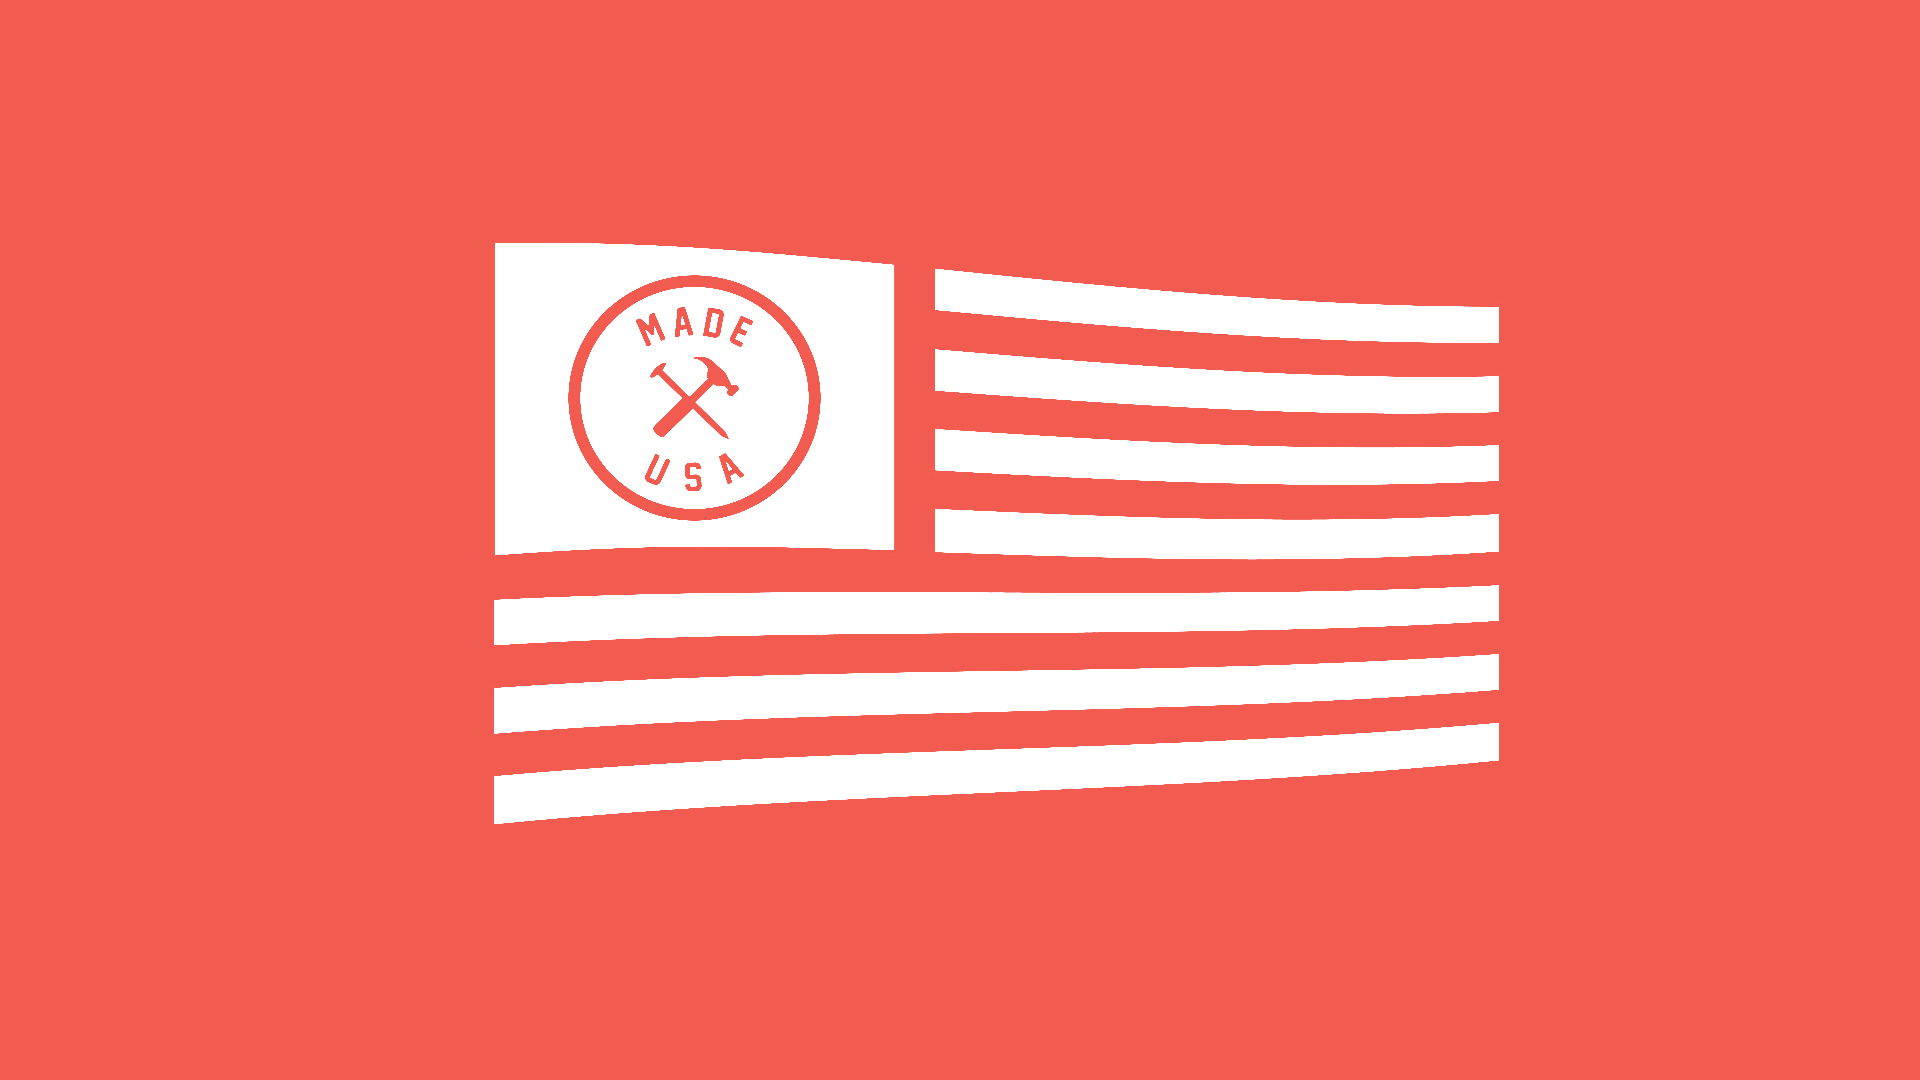 CSS flag animation w/ Treefort Lifestyles